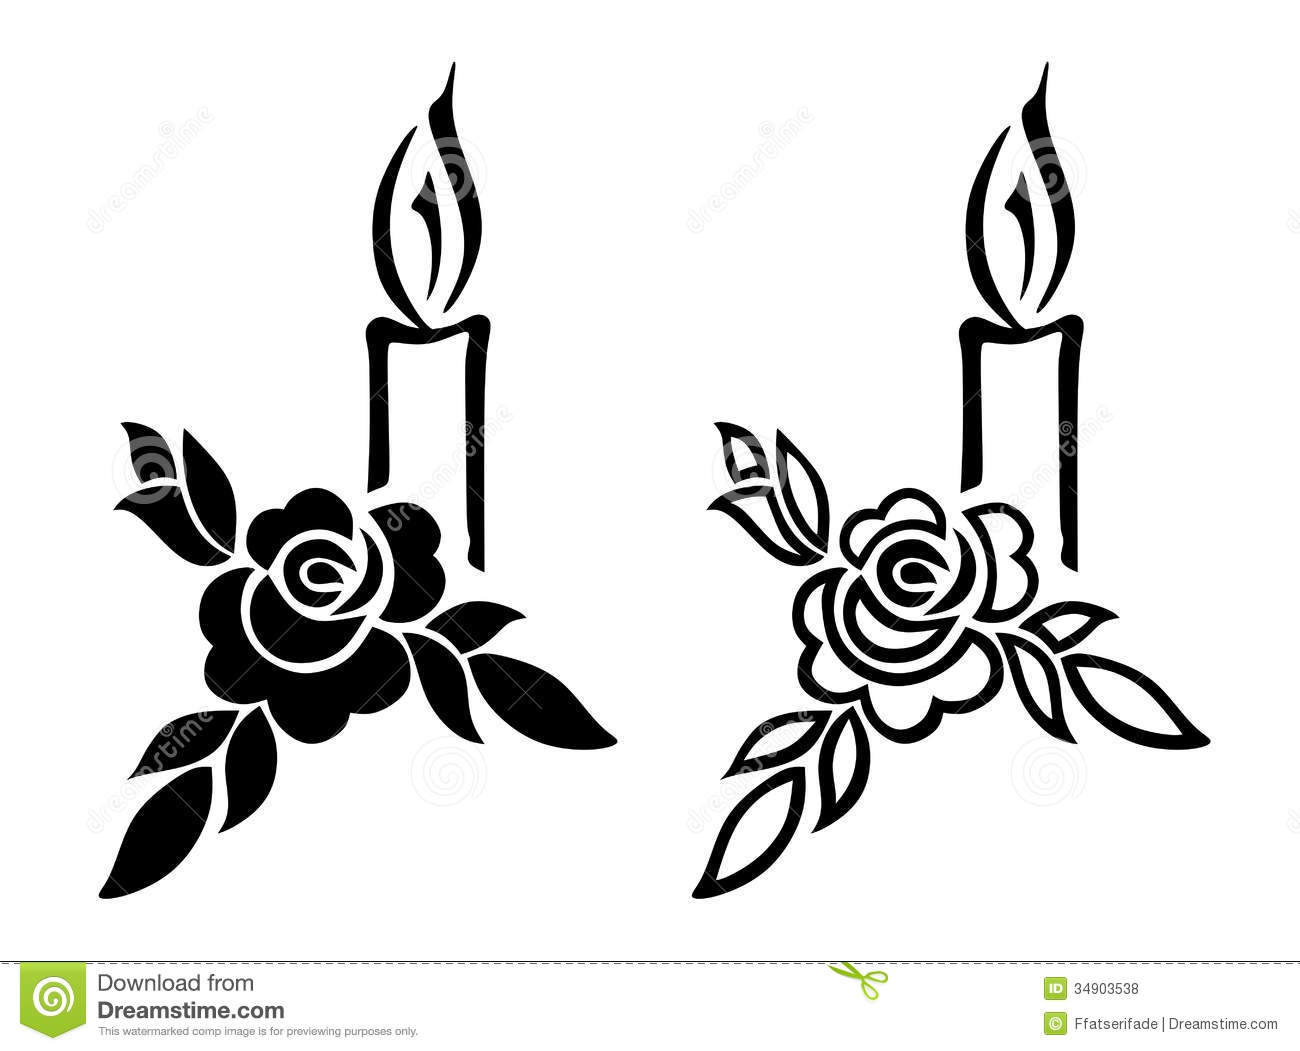 Decoration clipart funeral Program clipart Collection Free Religious